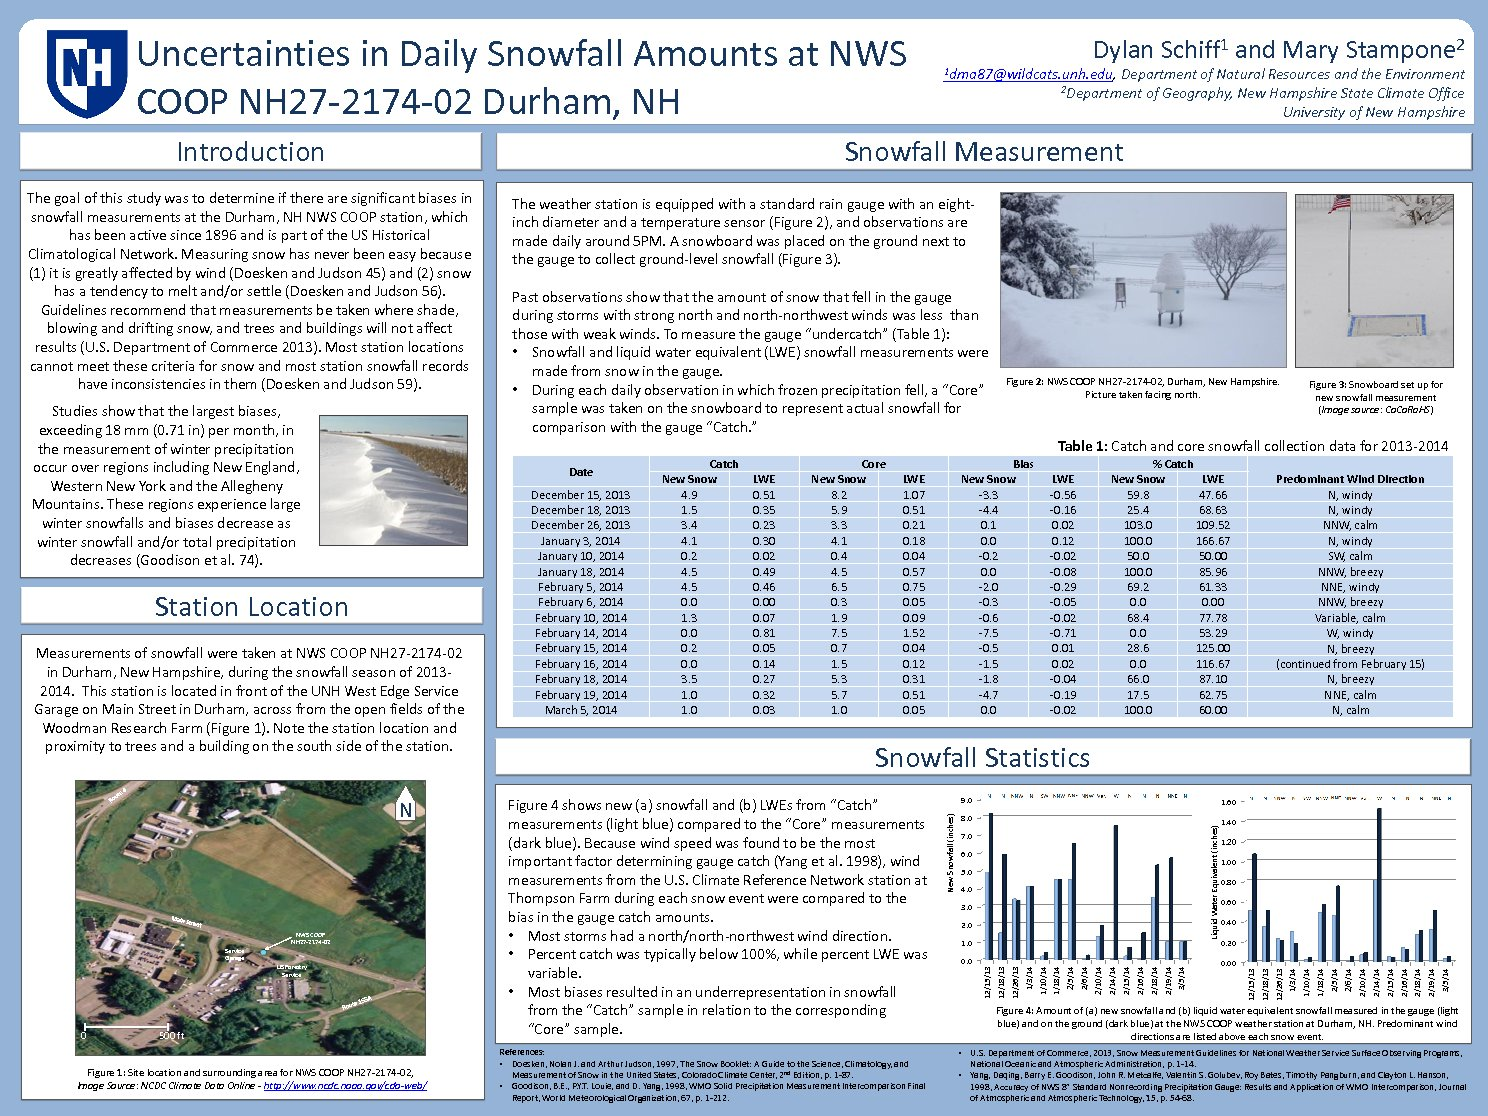 Uncertainties In Daily Snowfall Amounts At Nws Coop Nh27-2174-02 Durham, Nh  by mdb48